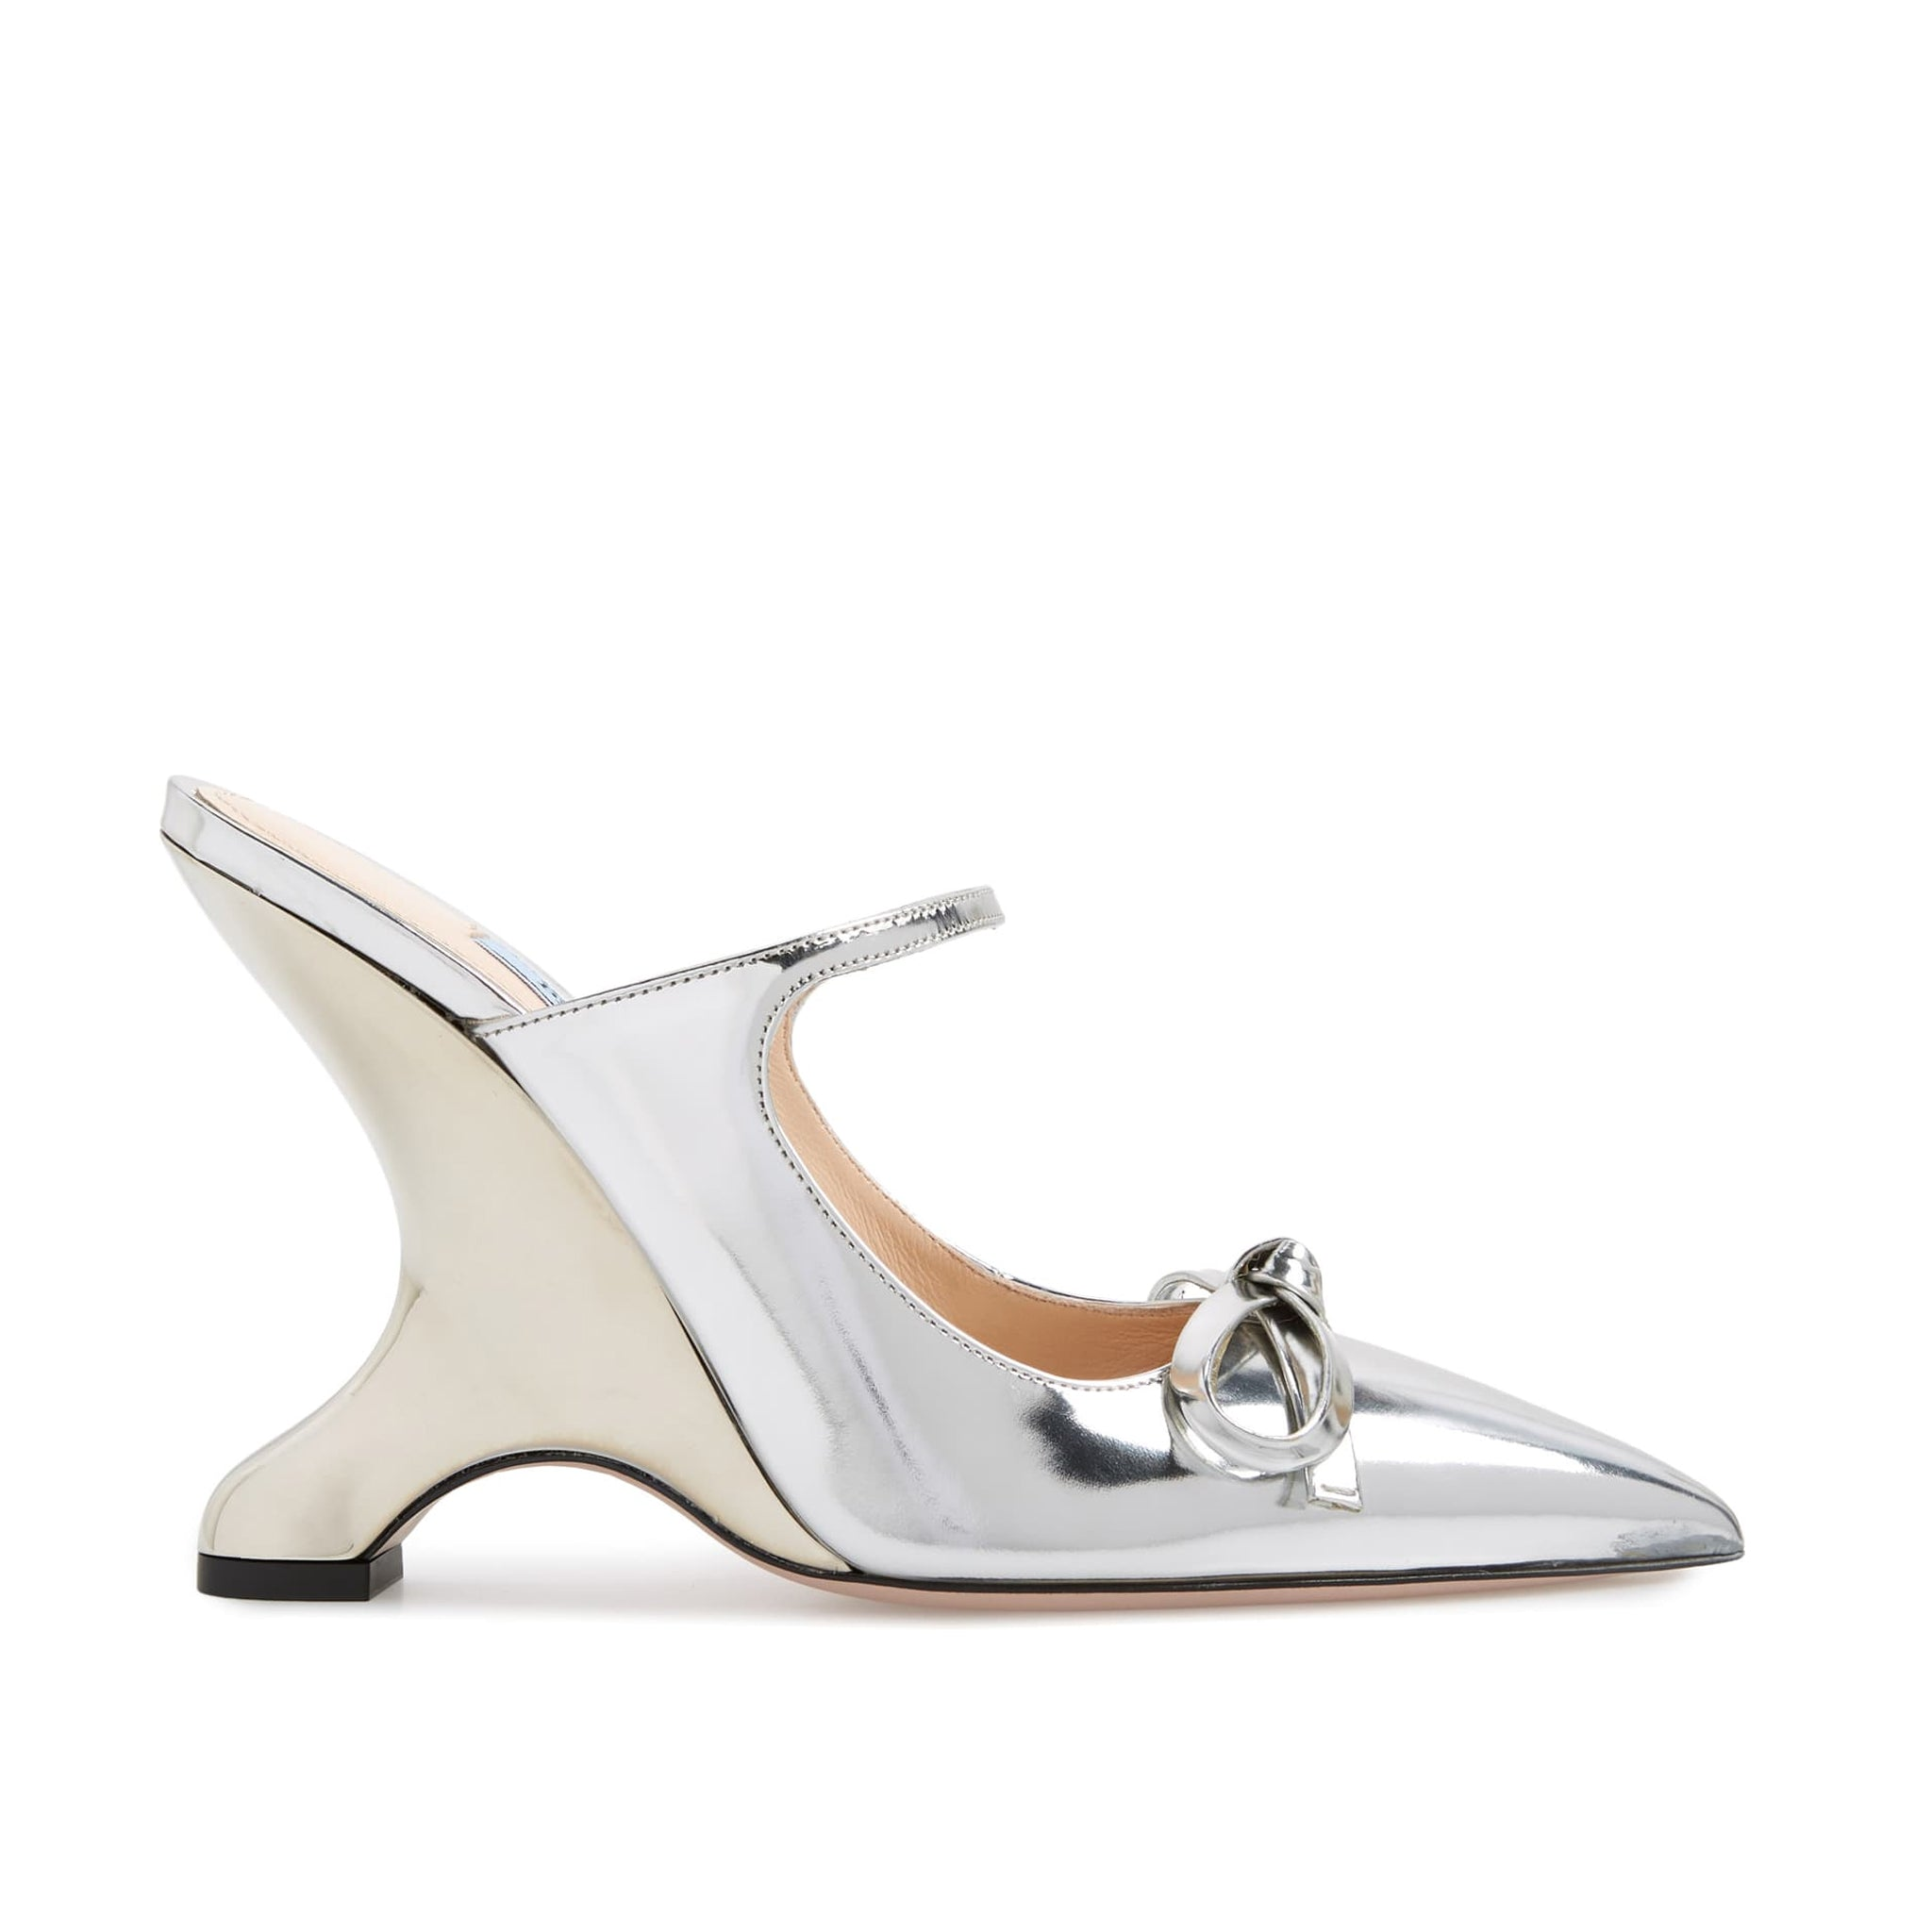 Prada Metallic Angled Heel Pumps